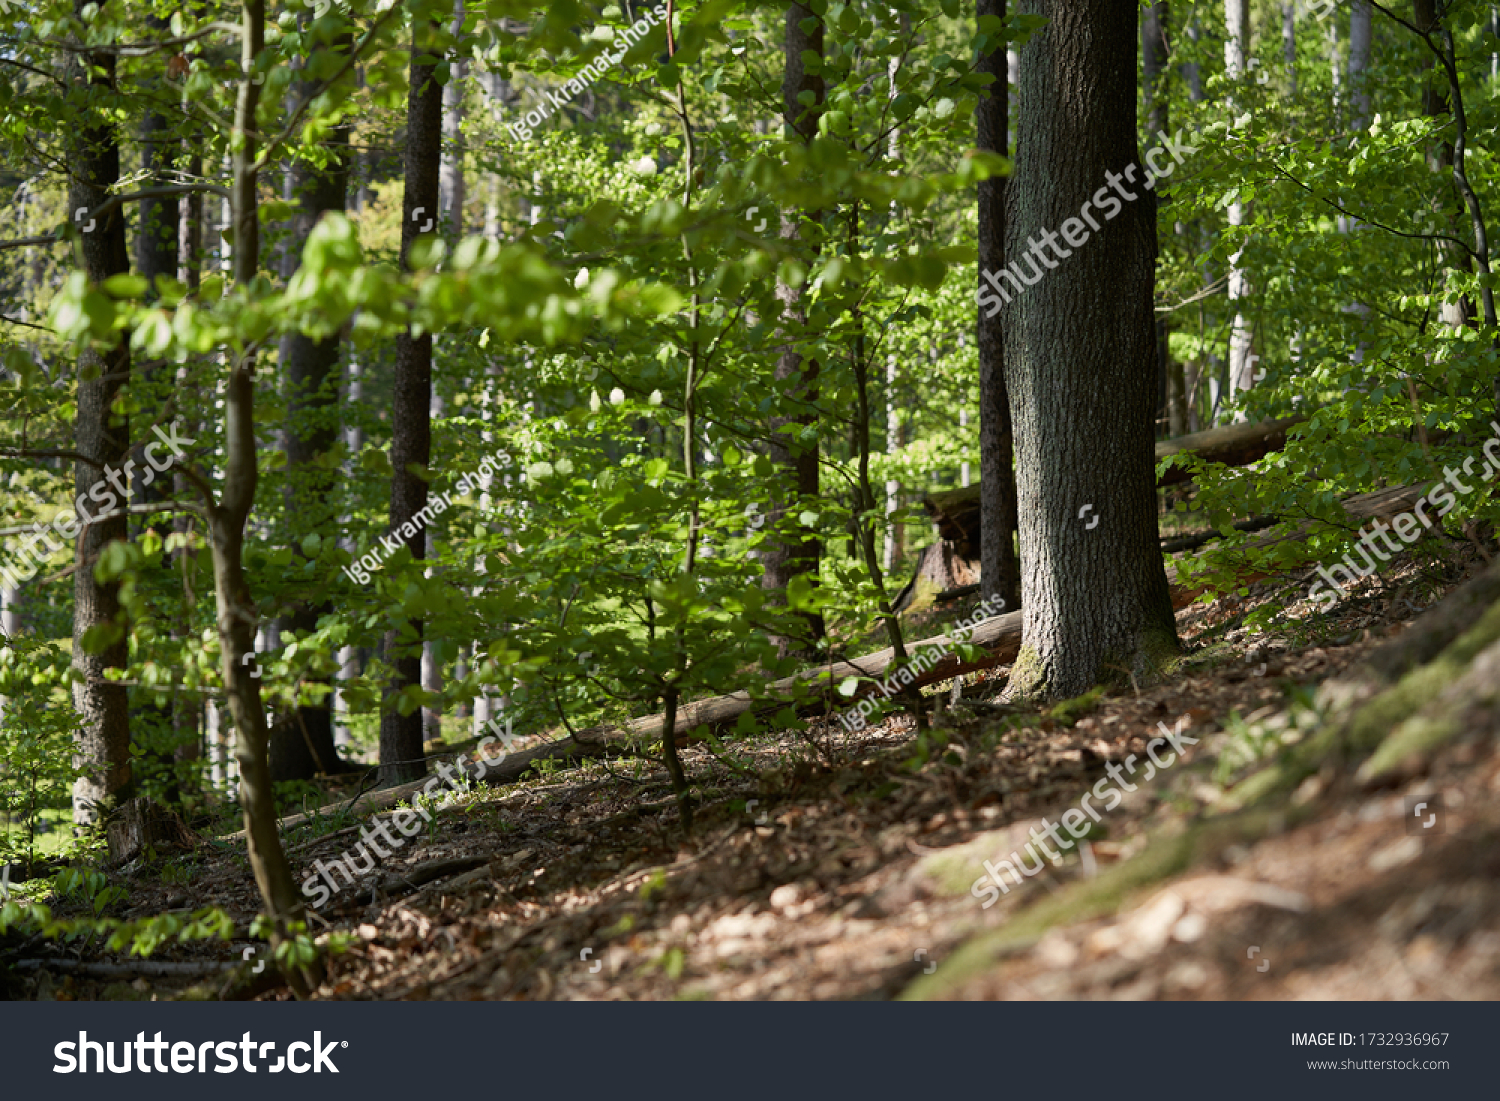 Scenic view of the green deciduous forest. Forest with beeches and oaks in the spring.